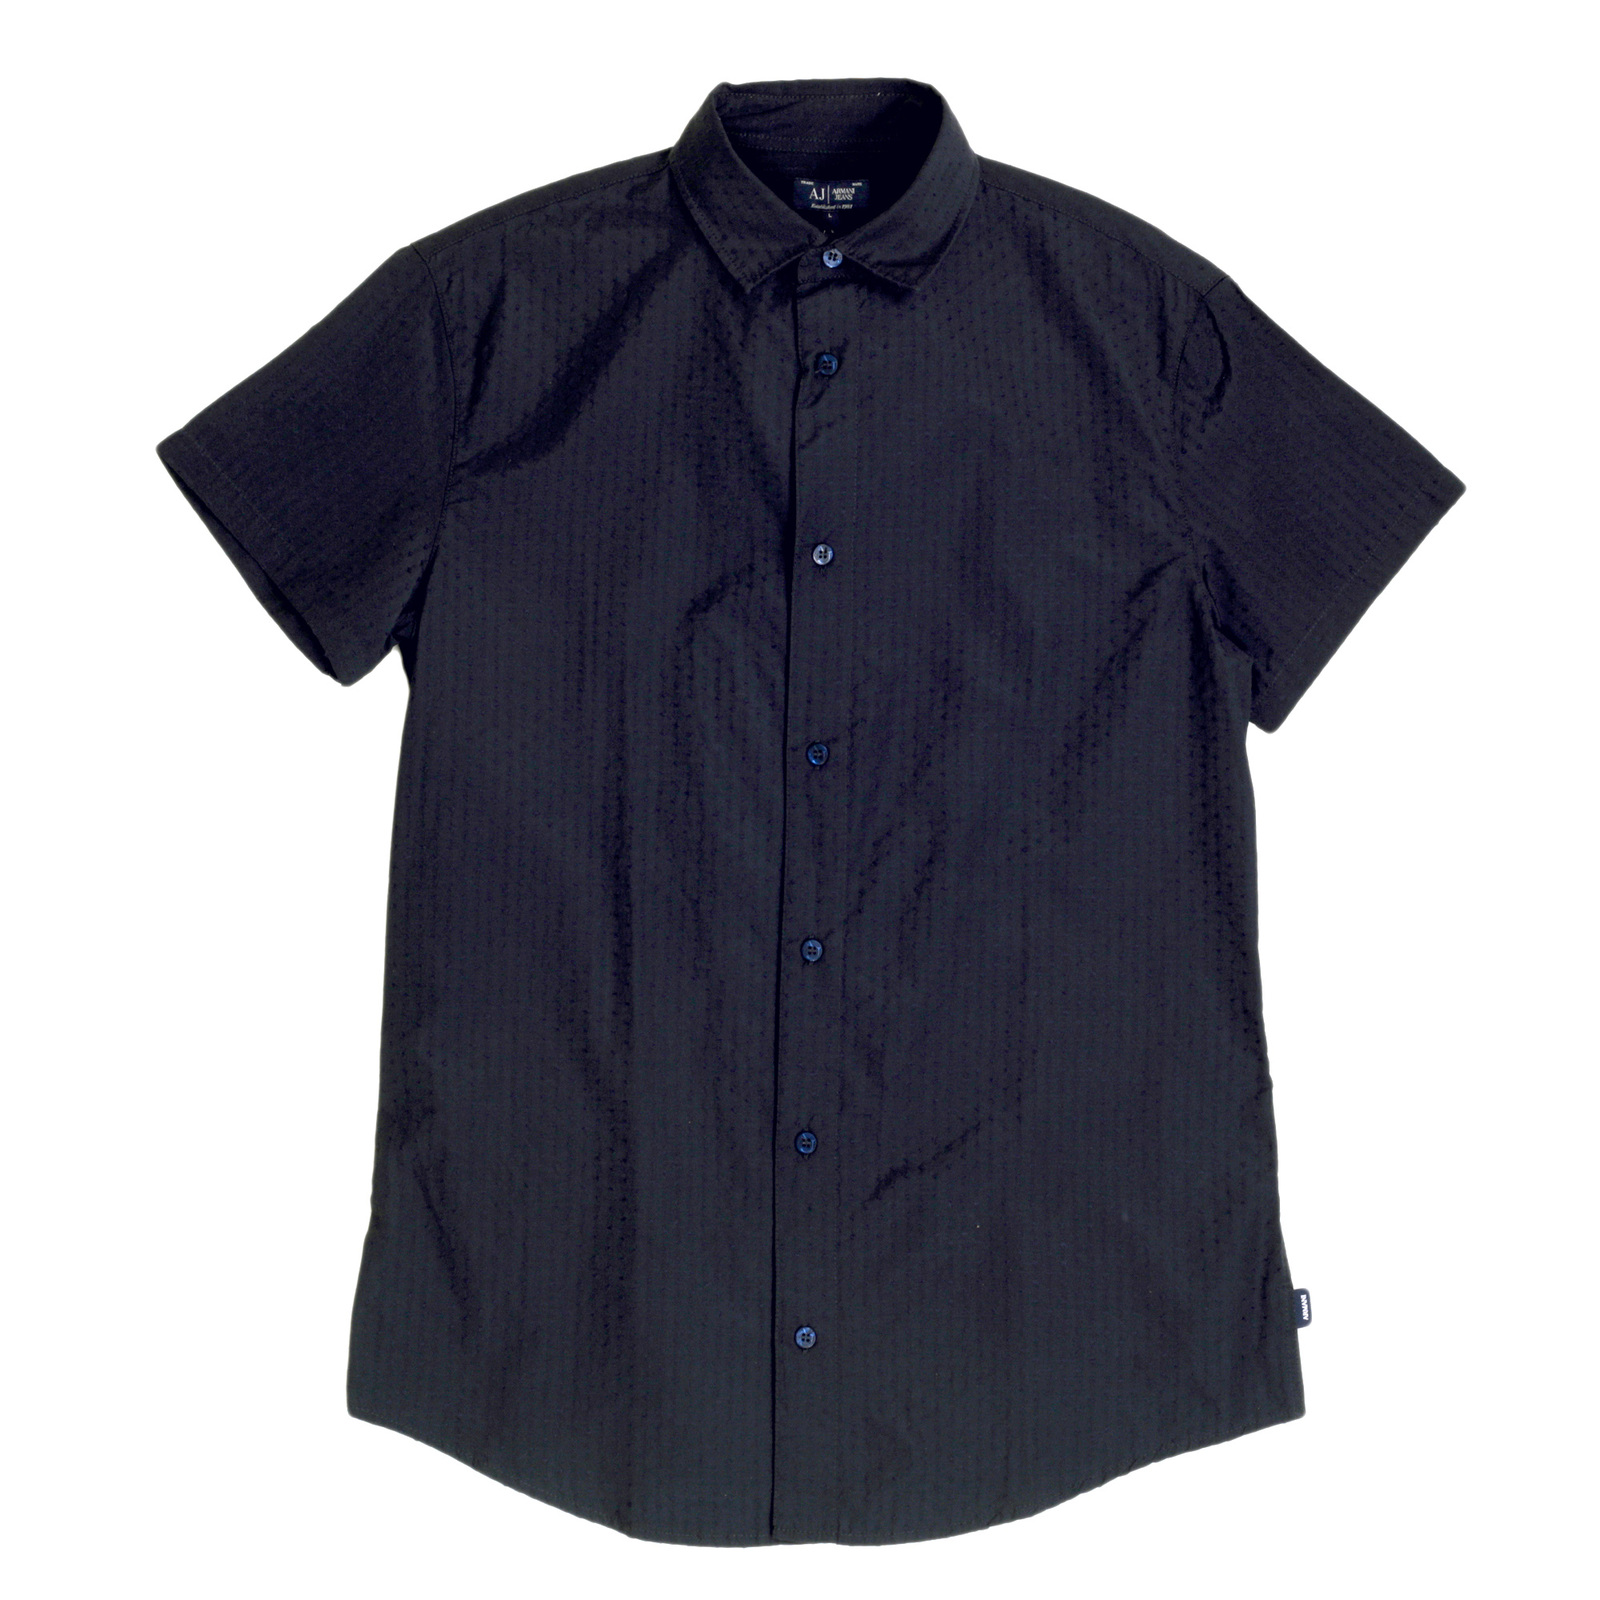 Slim Fit Short Sleeve Shirts For Men By Armani Jeans